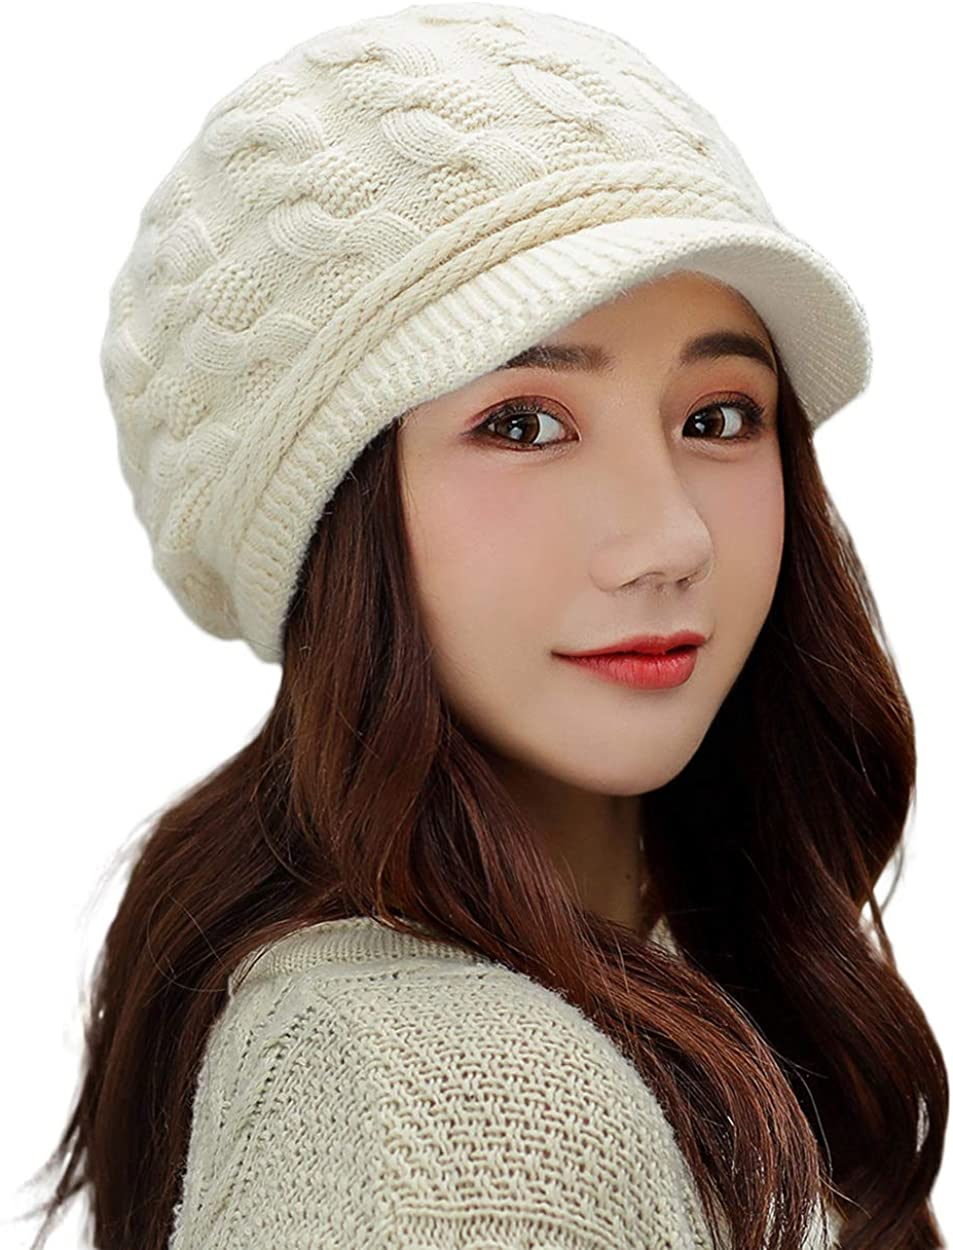 Pyrafox Knit Visor Winter Beanie Hat /& Ear Flap /& Fleece Scarf Sets Face Neck Cover